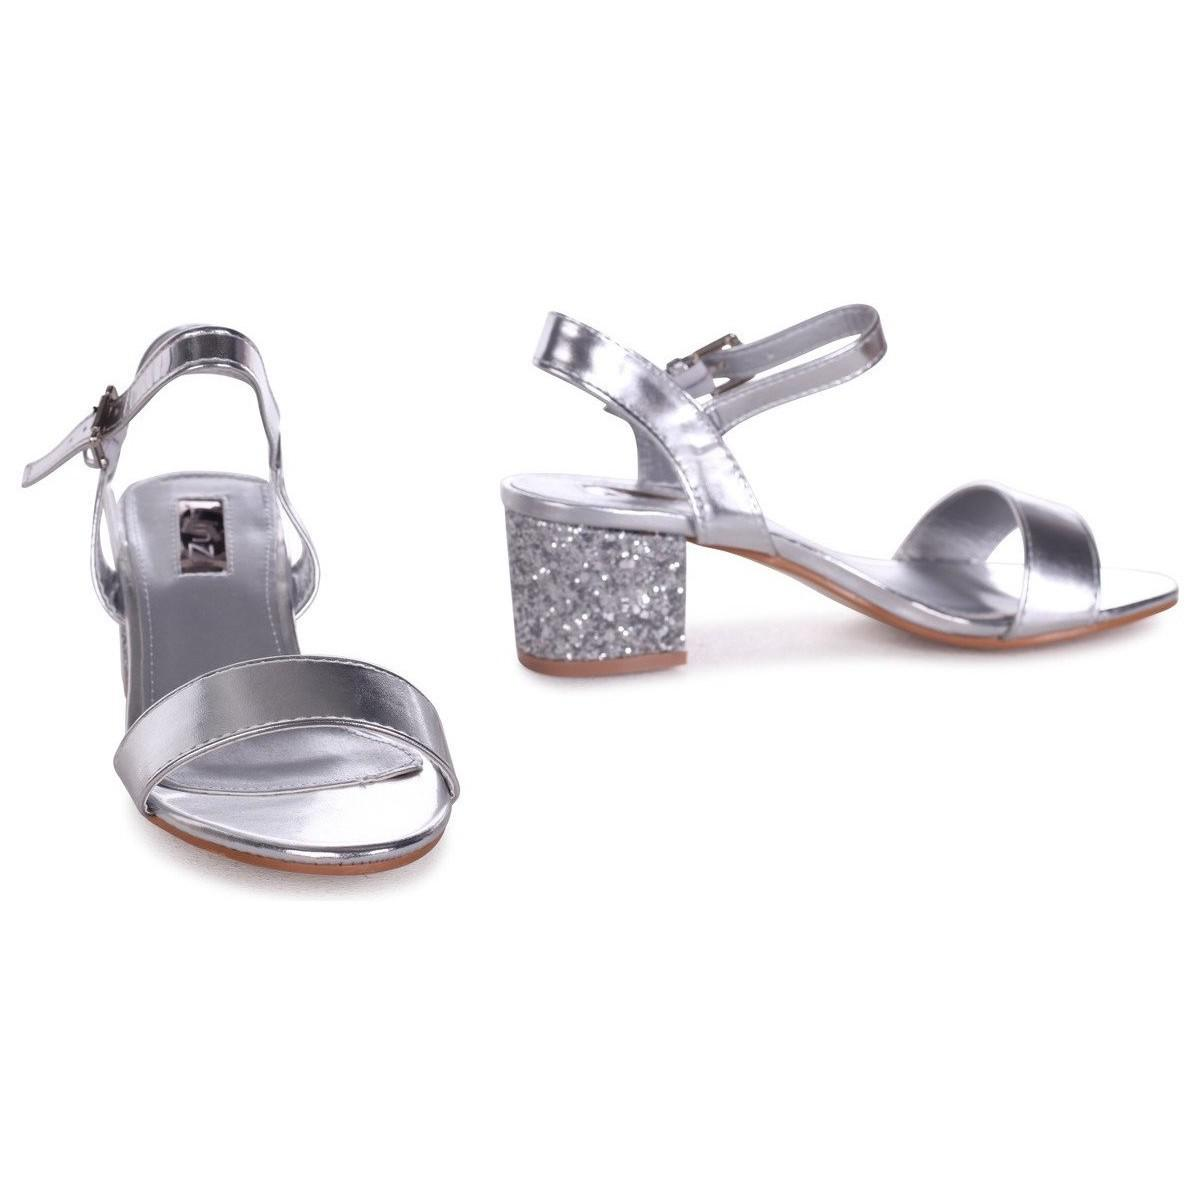 f39d5ca87a7 Linzi Guilty Women s Sandals In Silver in Metallic - Lyst